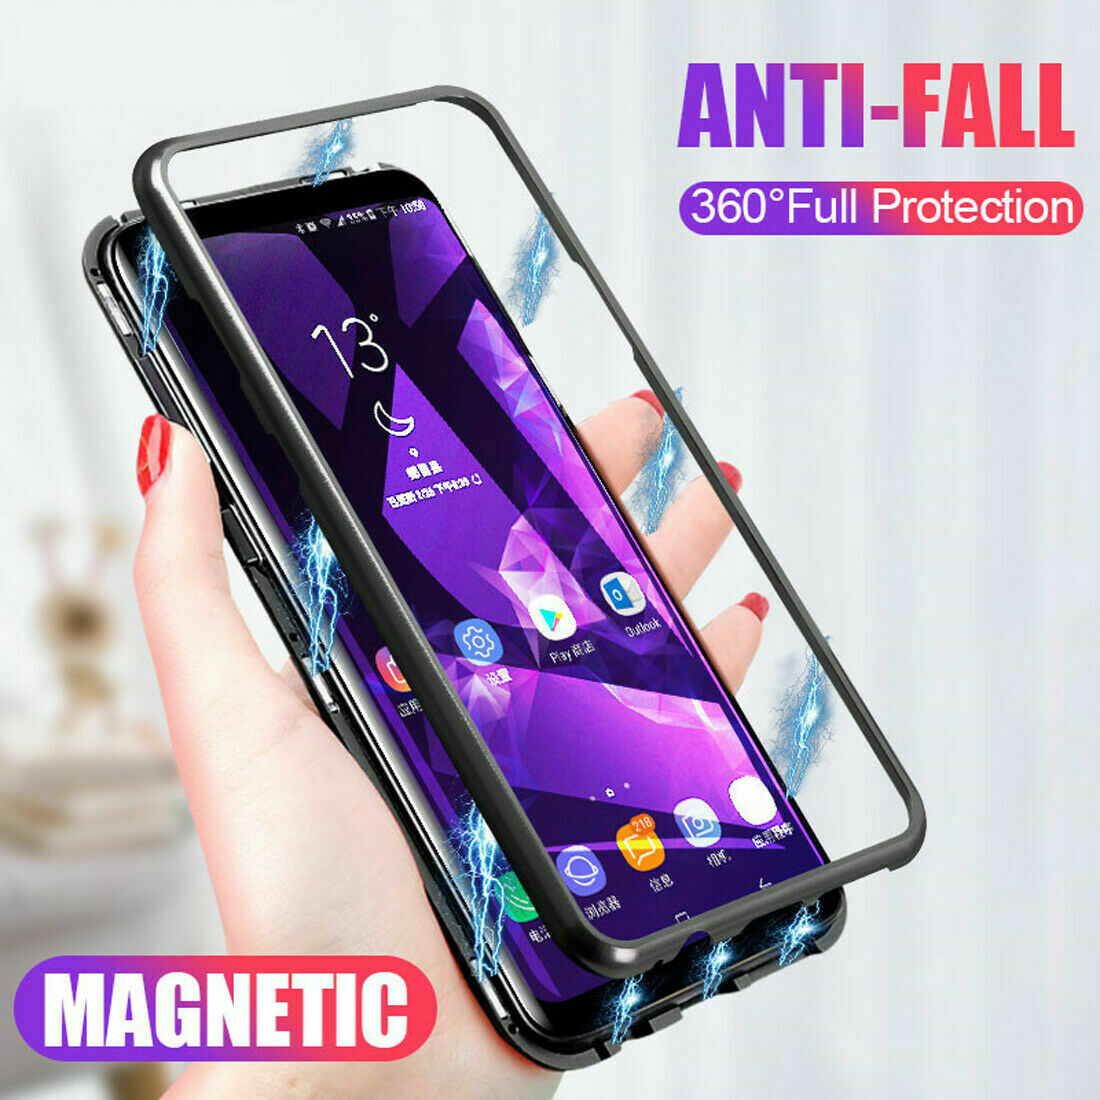 360 <font><b>Magnetic</b></font> Adsorption <font><b>Case</b></font> for Huawei P30 P20 Lite P10 Plus Nova 2S 2i 3 3i 3e 4 4e Y6 Prime 2018 Y9 2019 Mate 10 20 20X <font><b>Cases</b></font> image